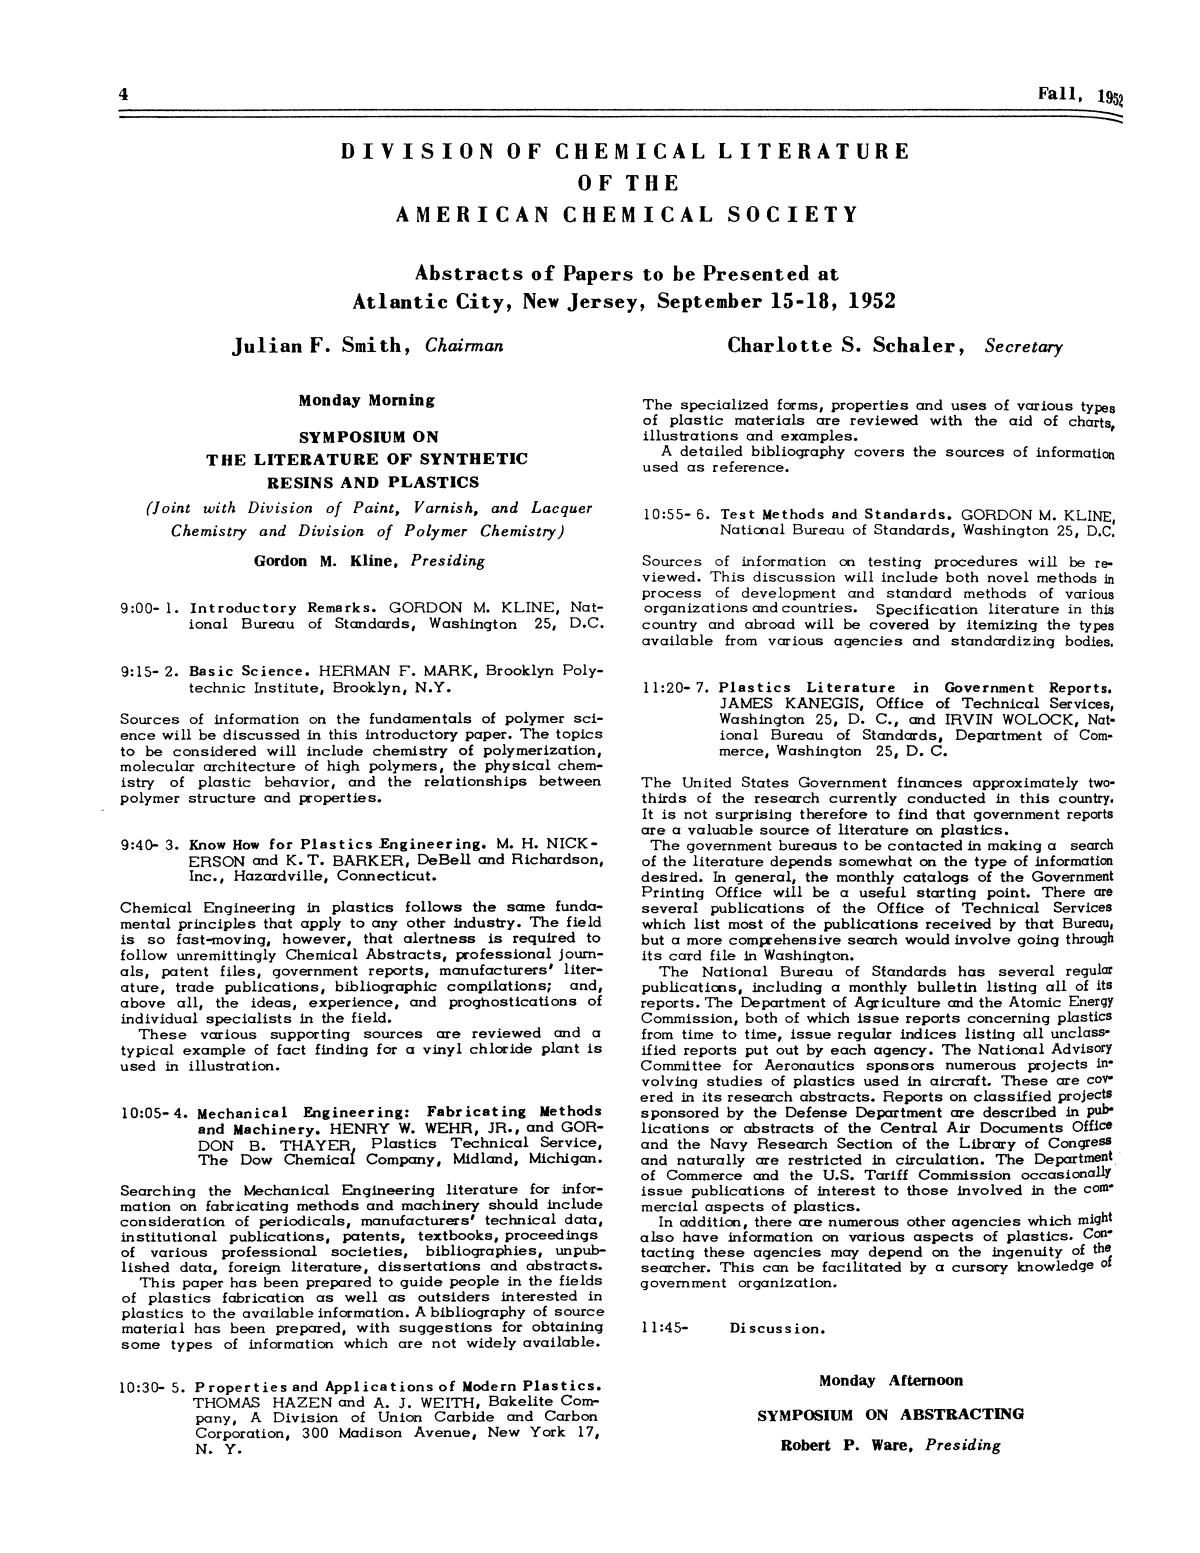 Chemical Literature, Volume 4, Number 3, Fall 1952                                                                                                      4